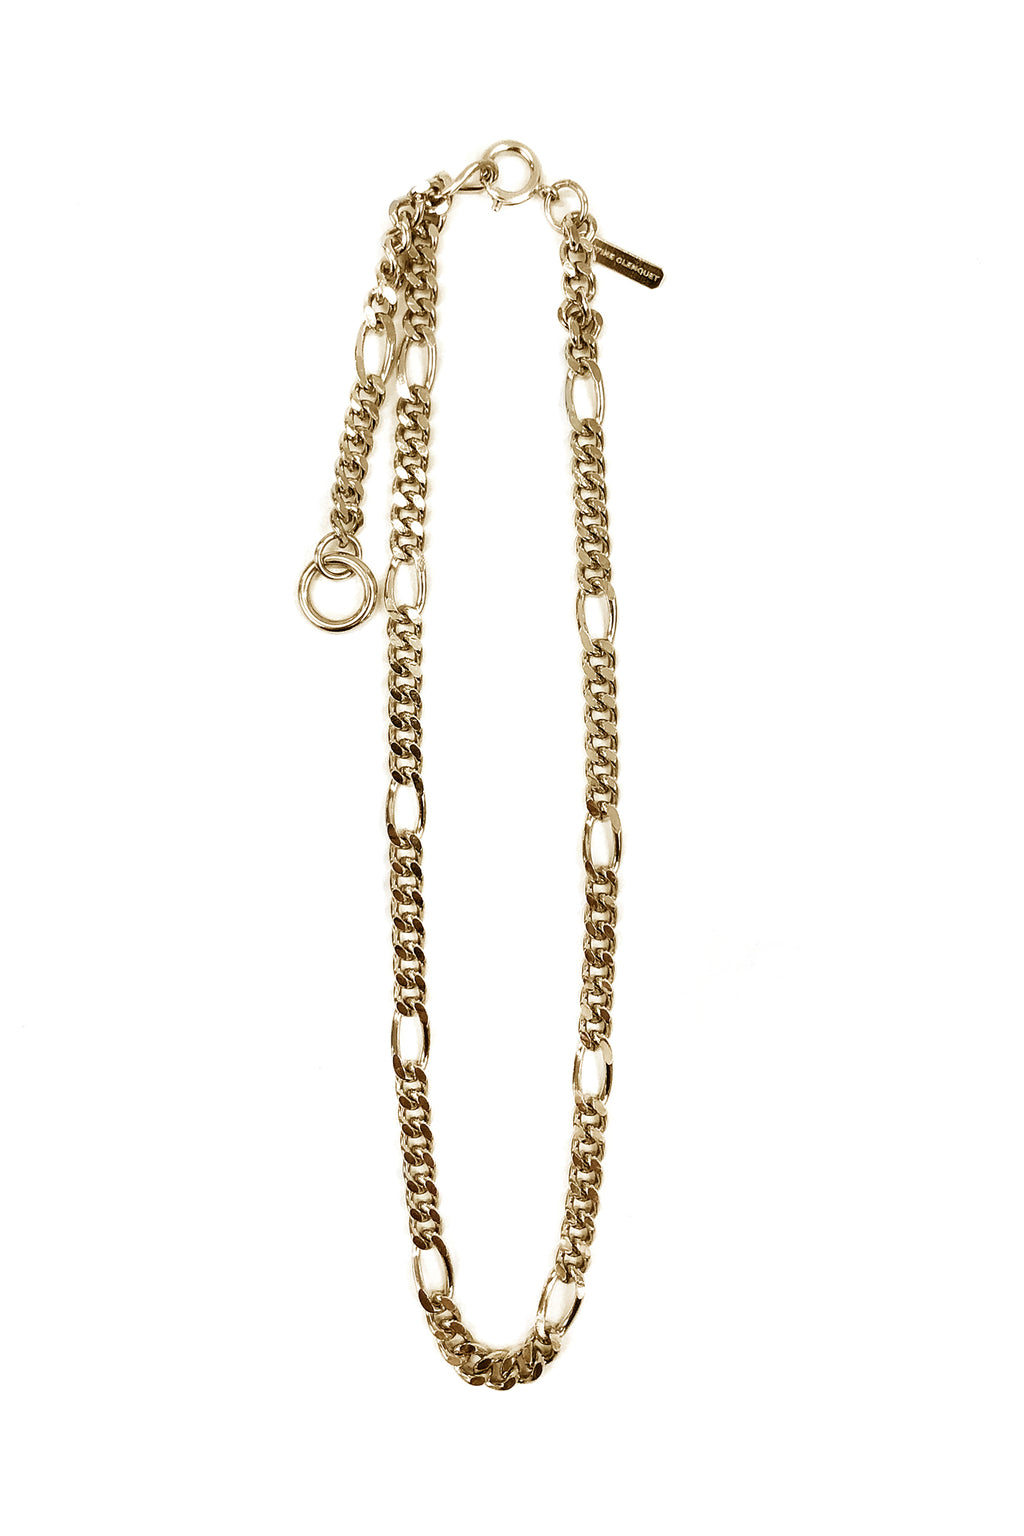 Justine Clenquet Kim Necklace, Gold